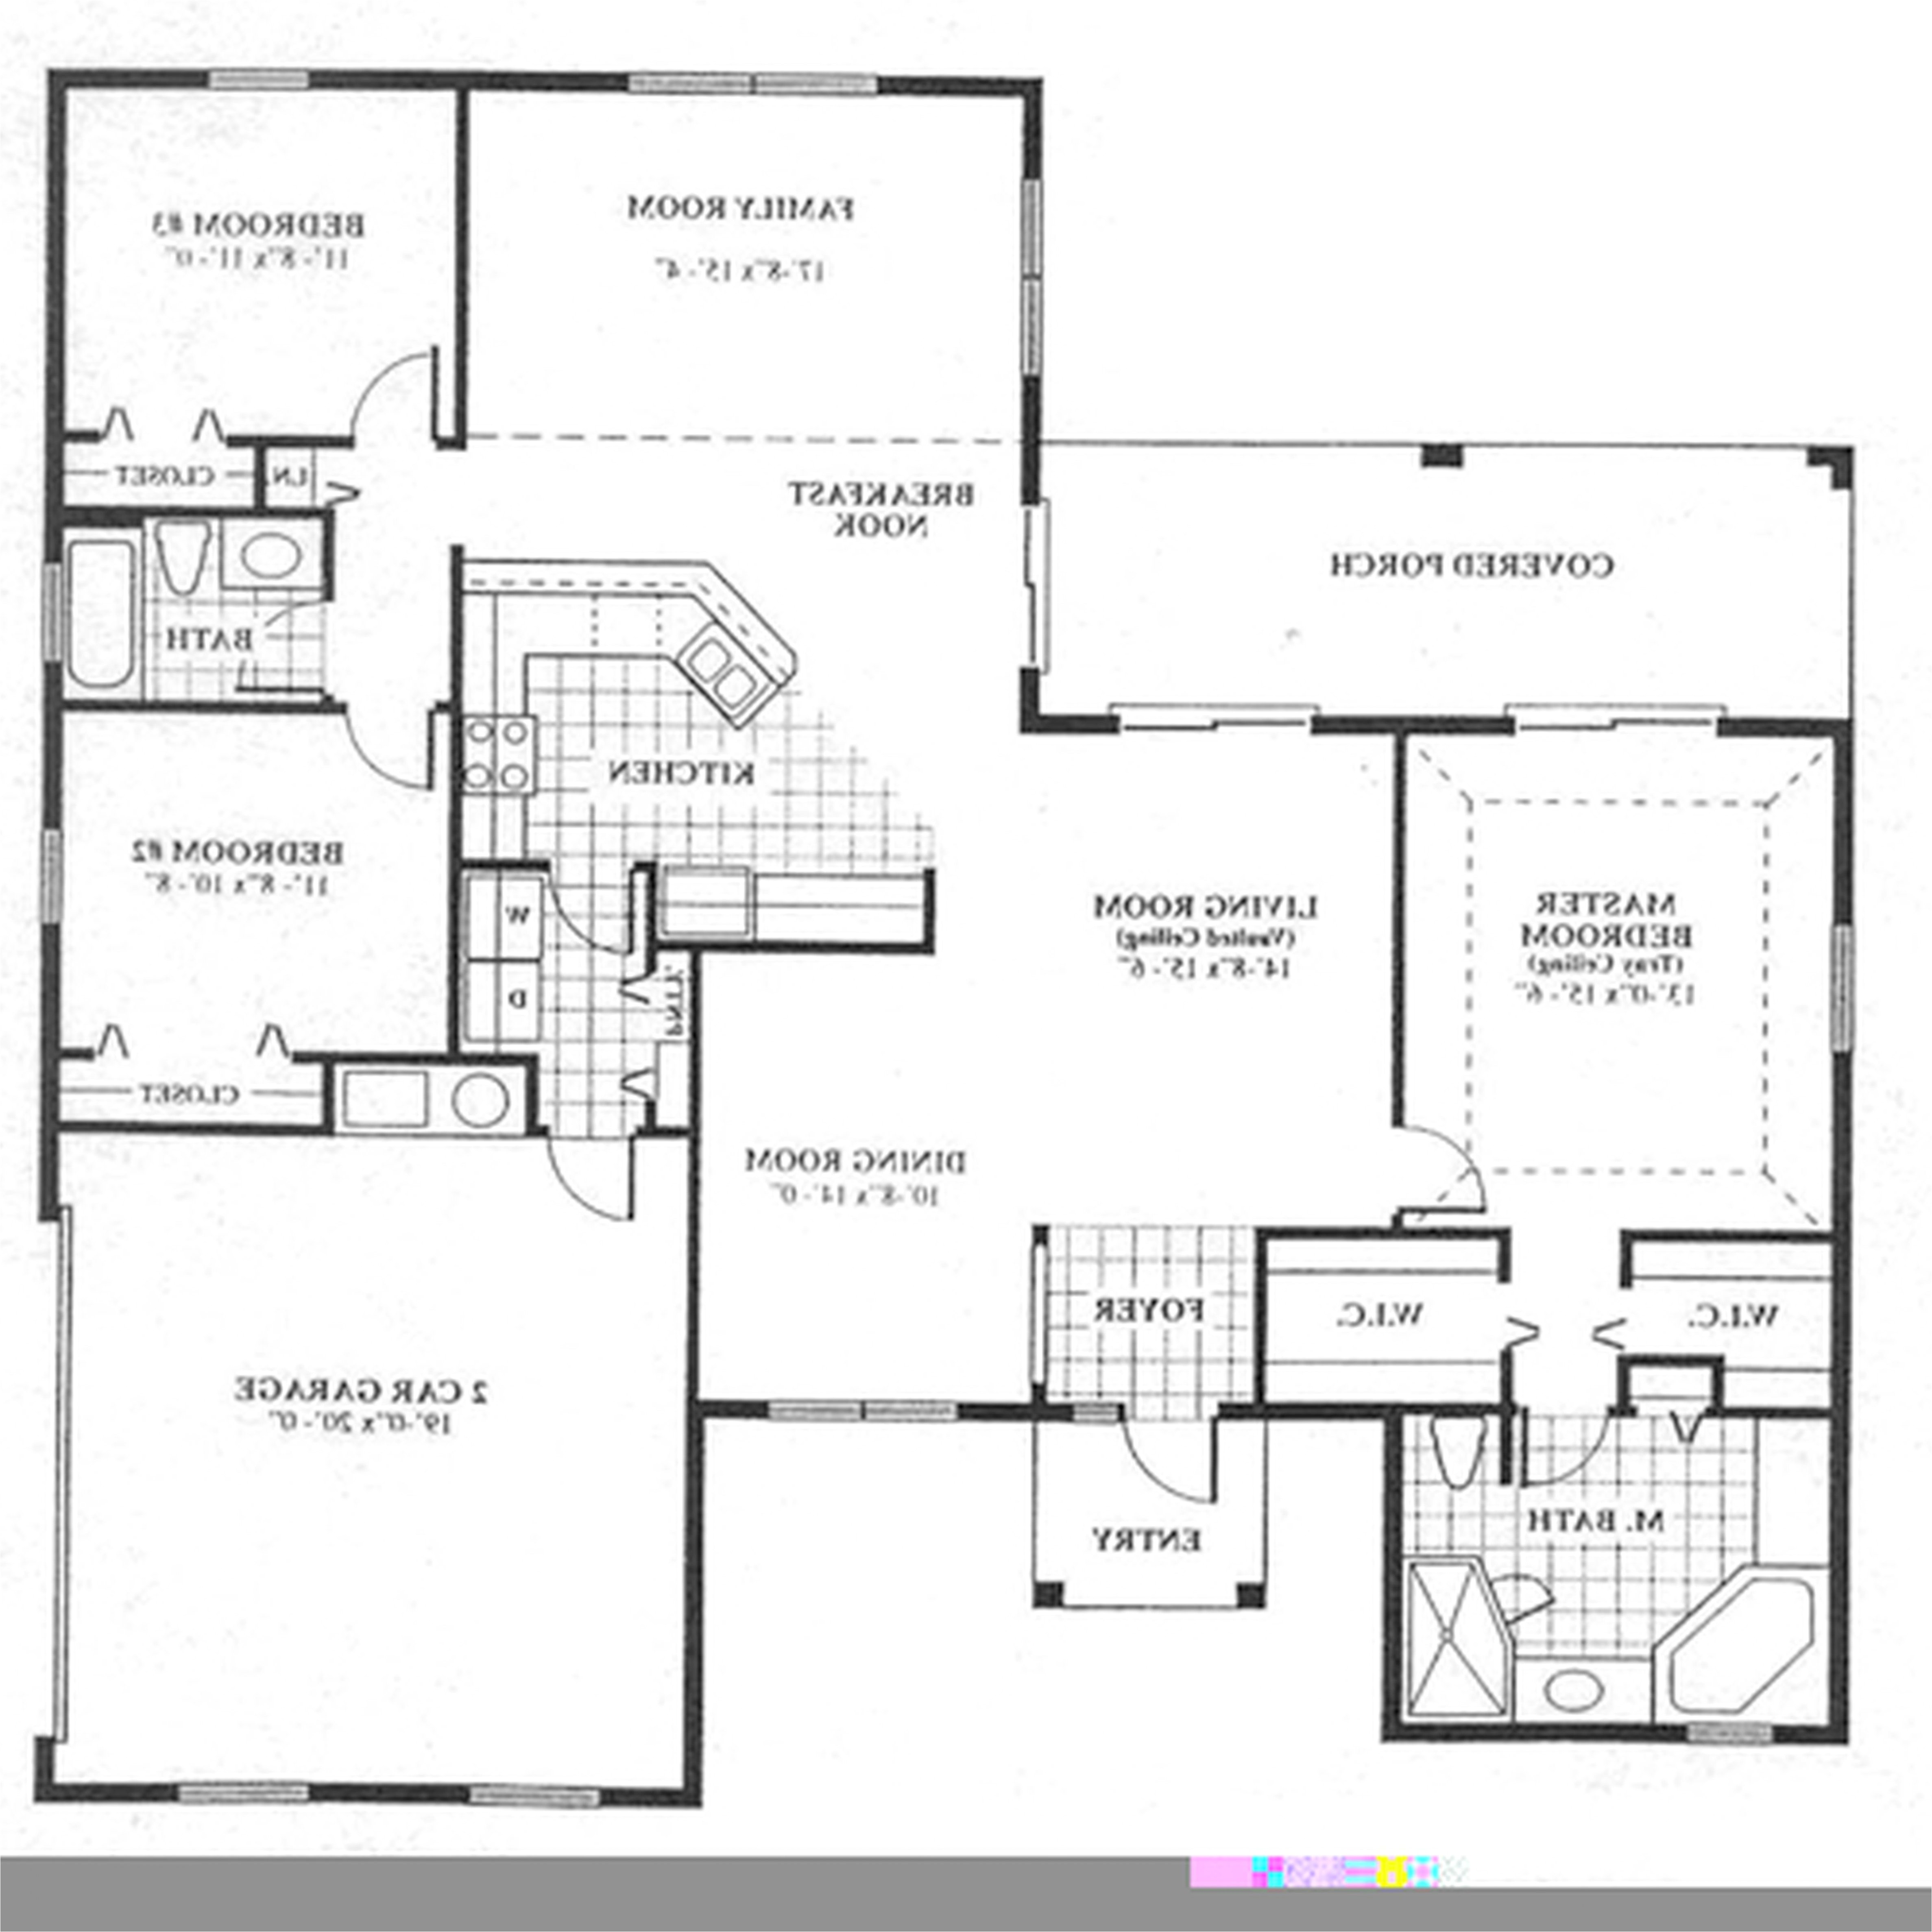 draw house plans for free